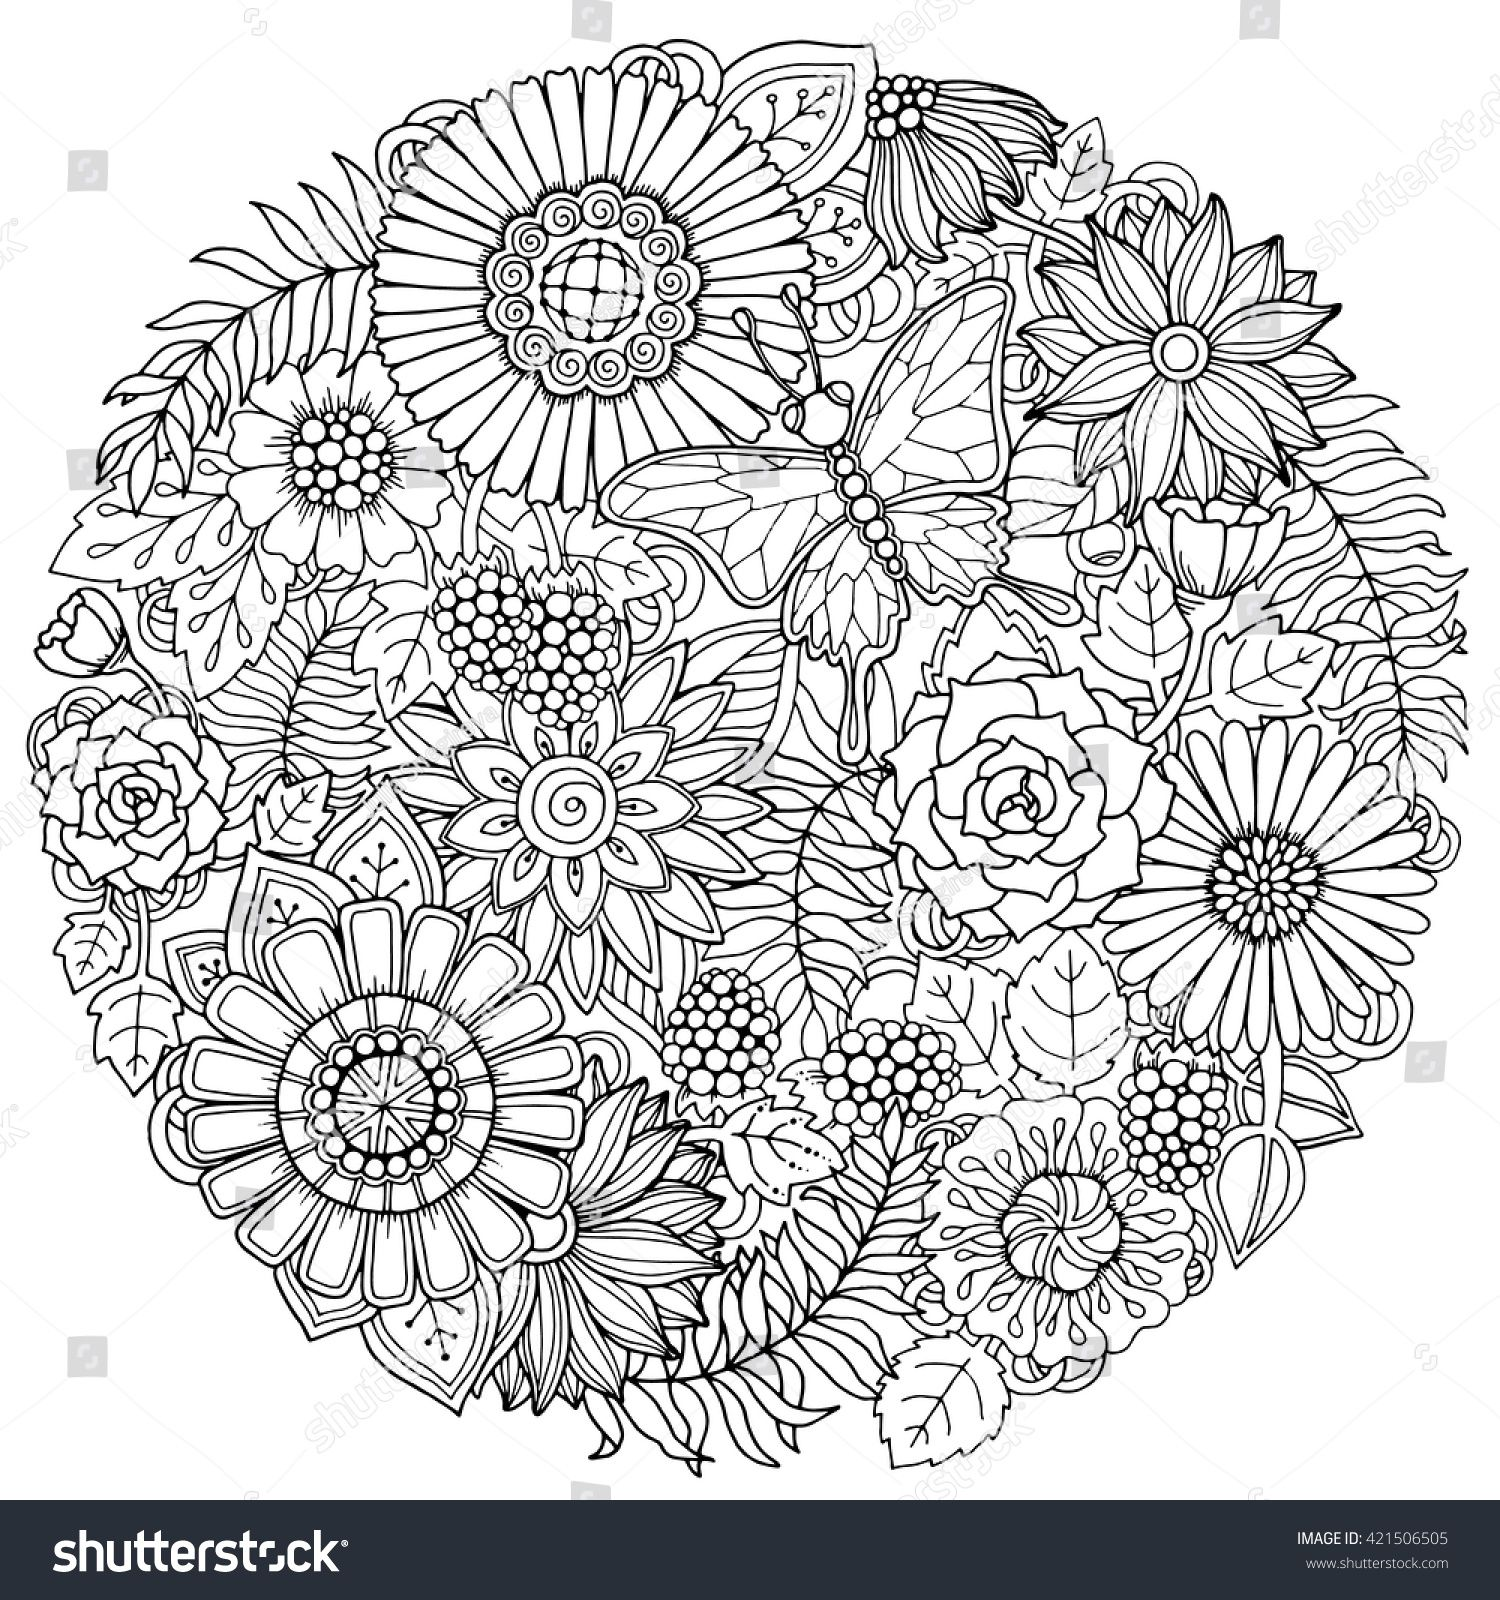 Circle Summer Doodle Flower Ornament With Butterfly Hand Drawn Art Floral Mandala Black And White Background Flower Doodles Hand Art Drawing Mandala Coloring